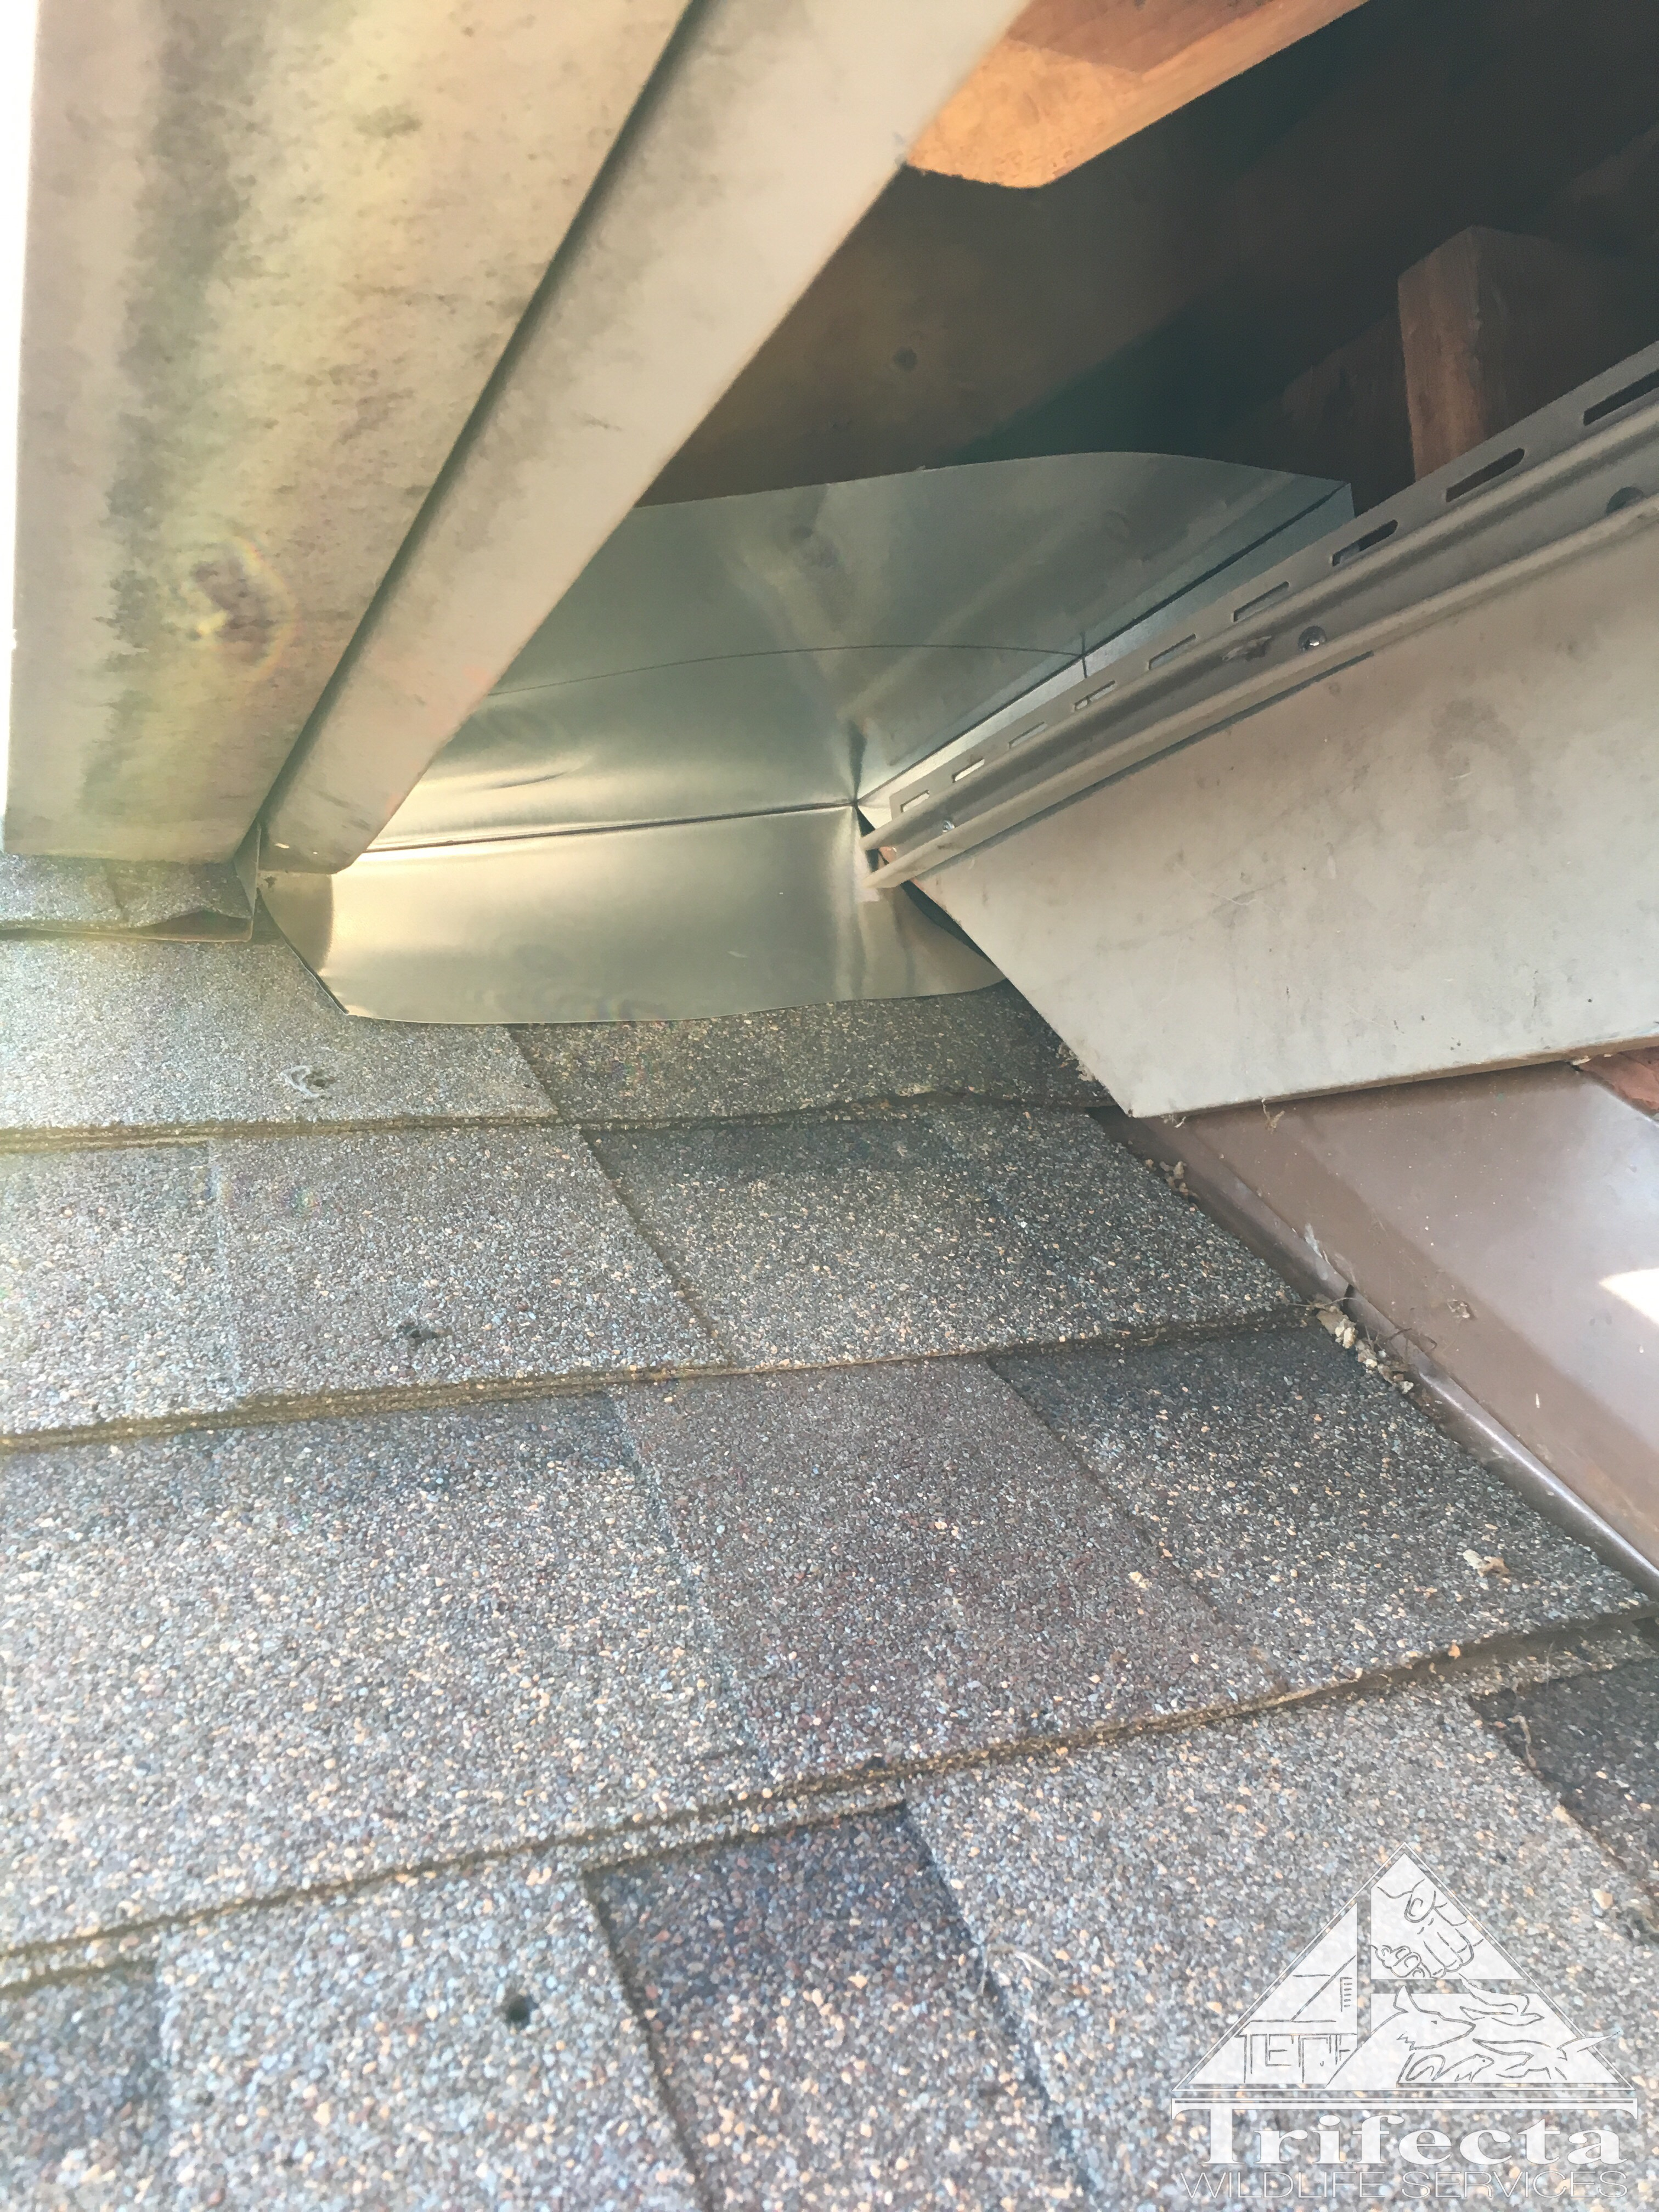 During repair of soffit return to exclude raccoons